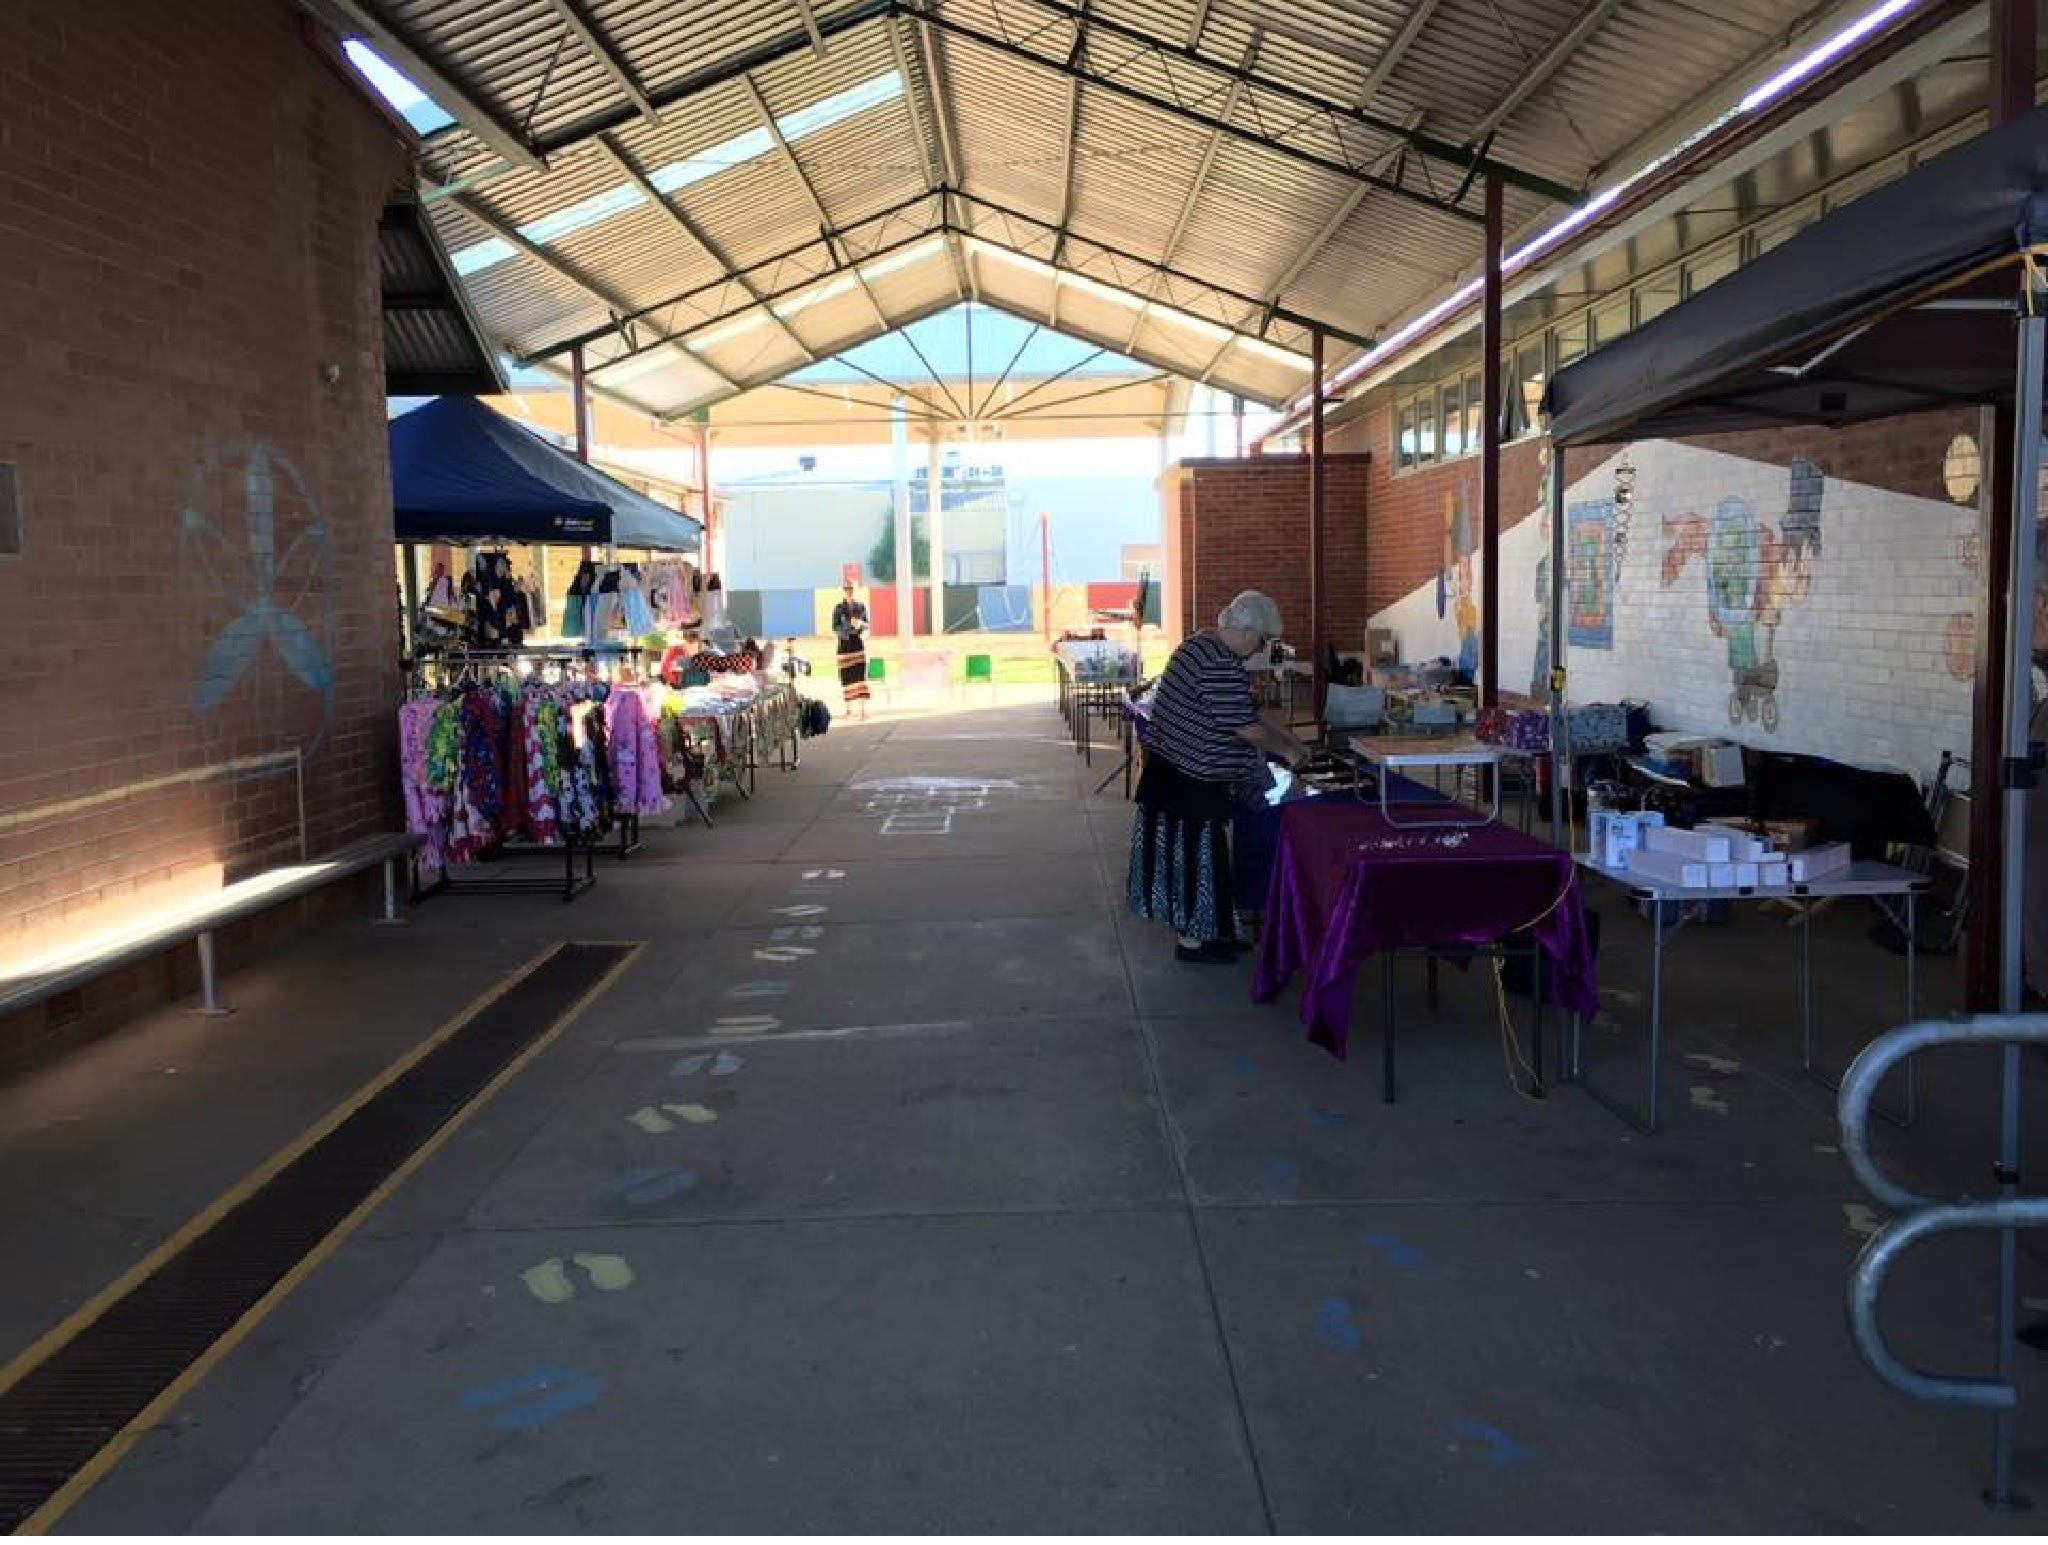 Mulwala Public School Easter Market Extravaganza Cancelled - Accommodation Tasmania